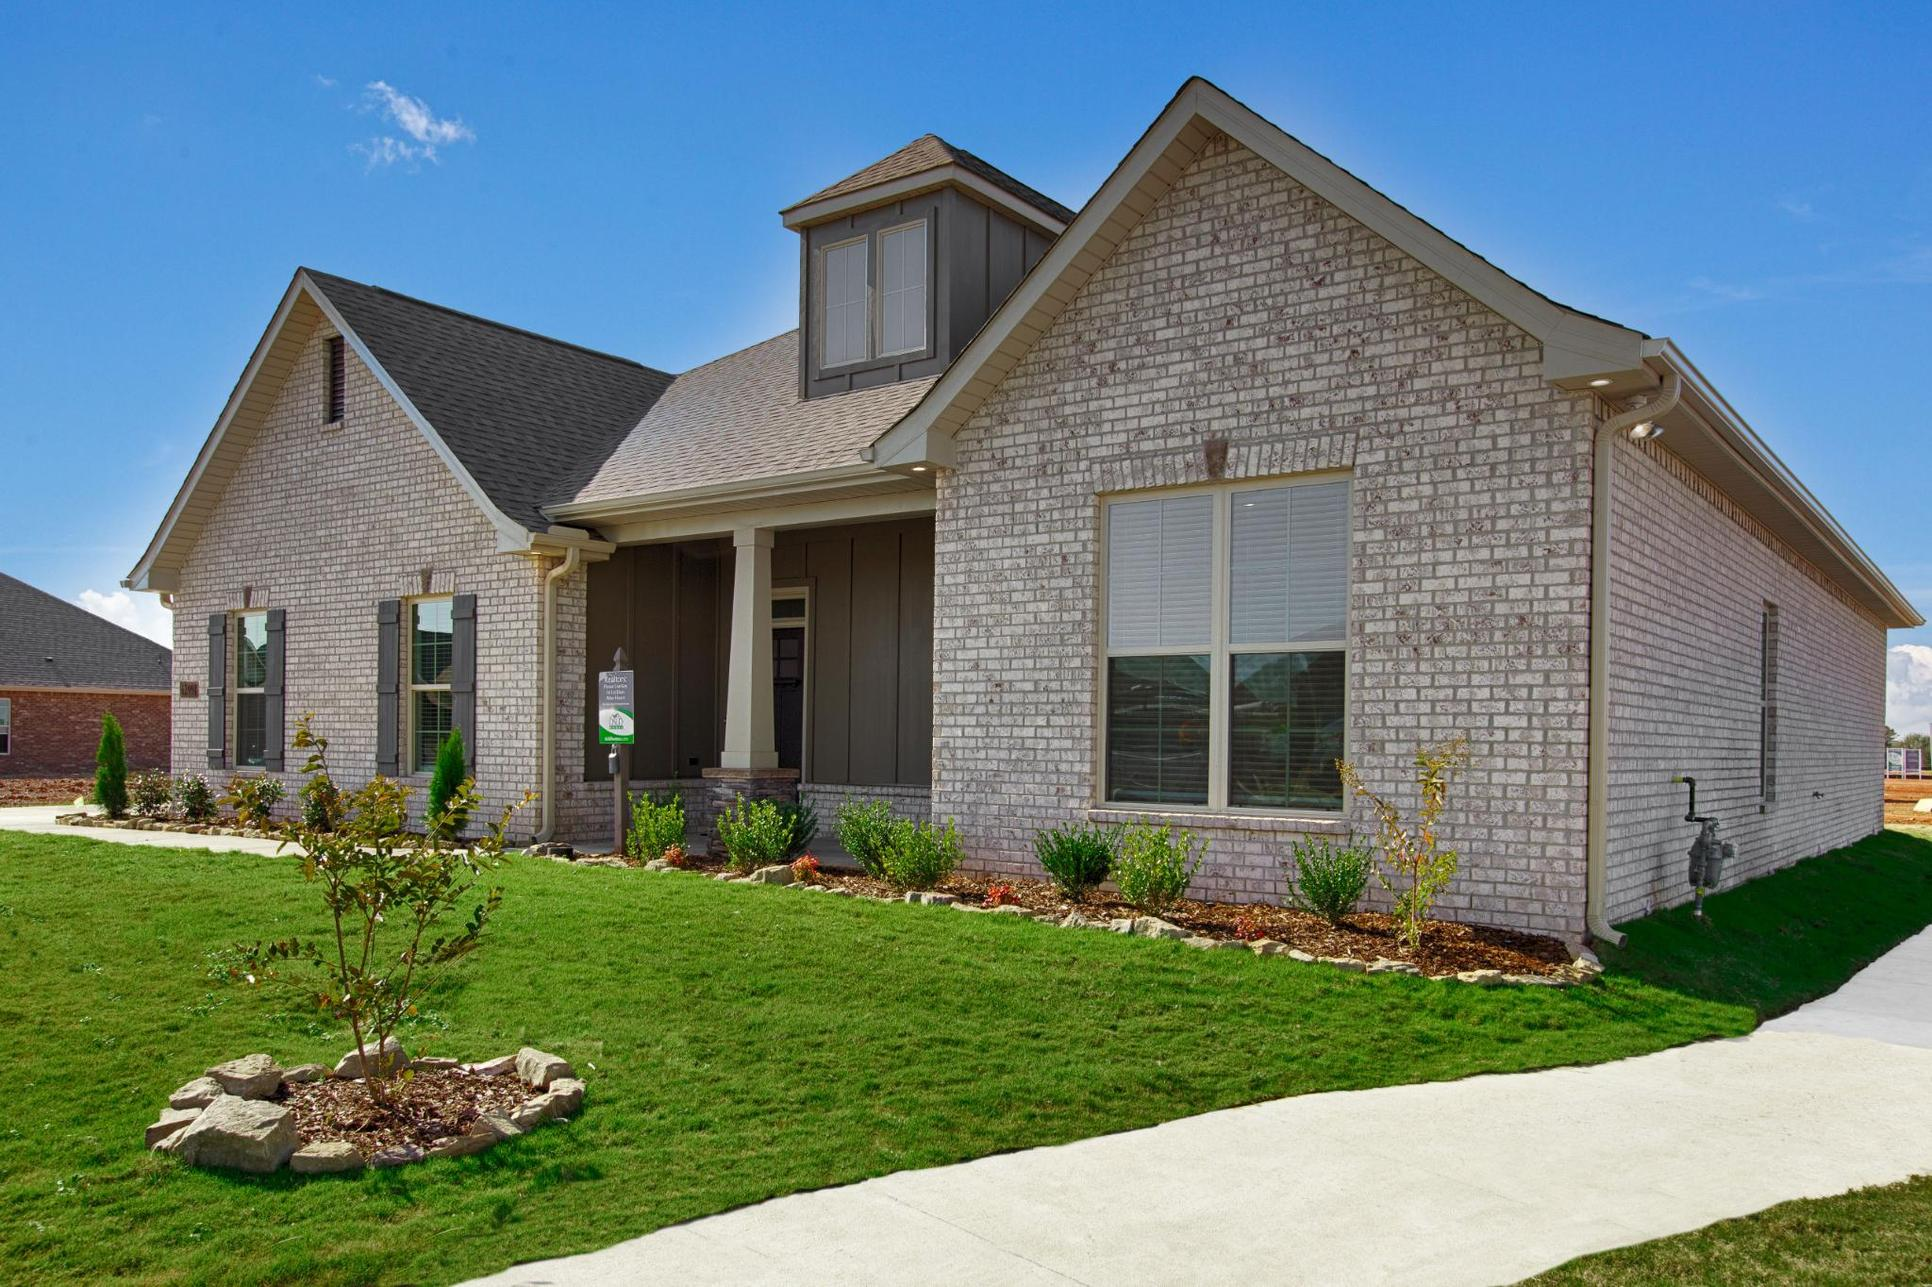 Ivanhoe II A Stone - Newby Chapel Community - DSLD Homes - Madison, AL - Model Home Exterior